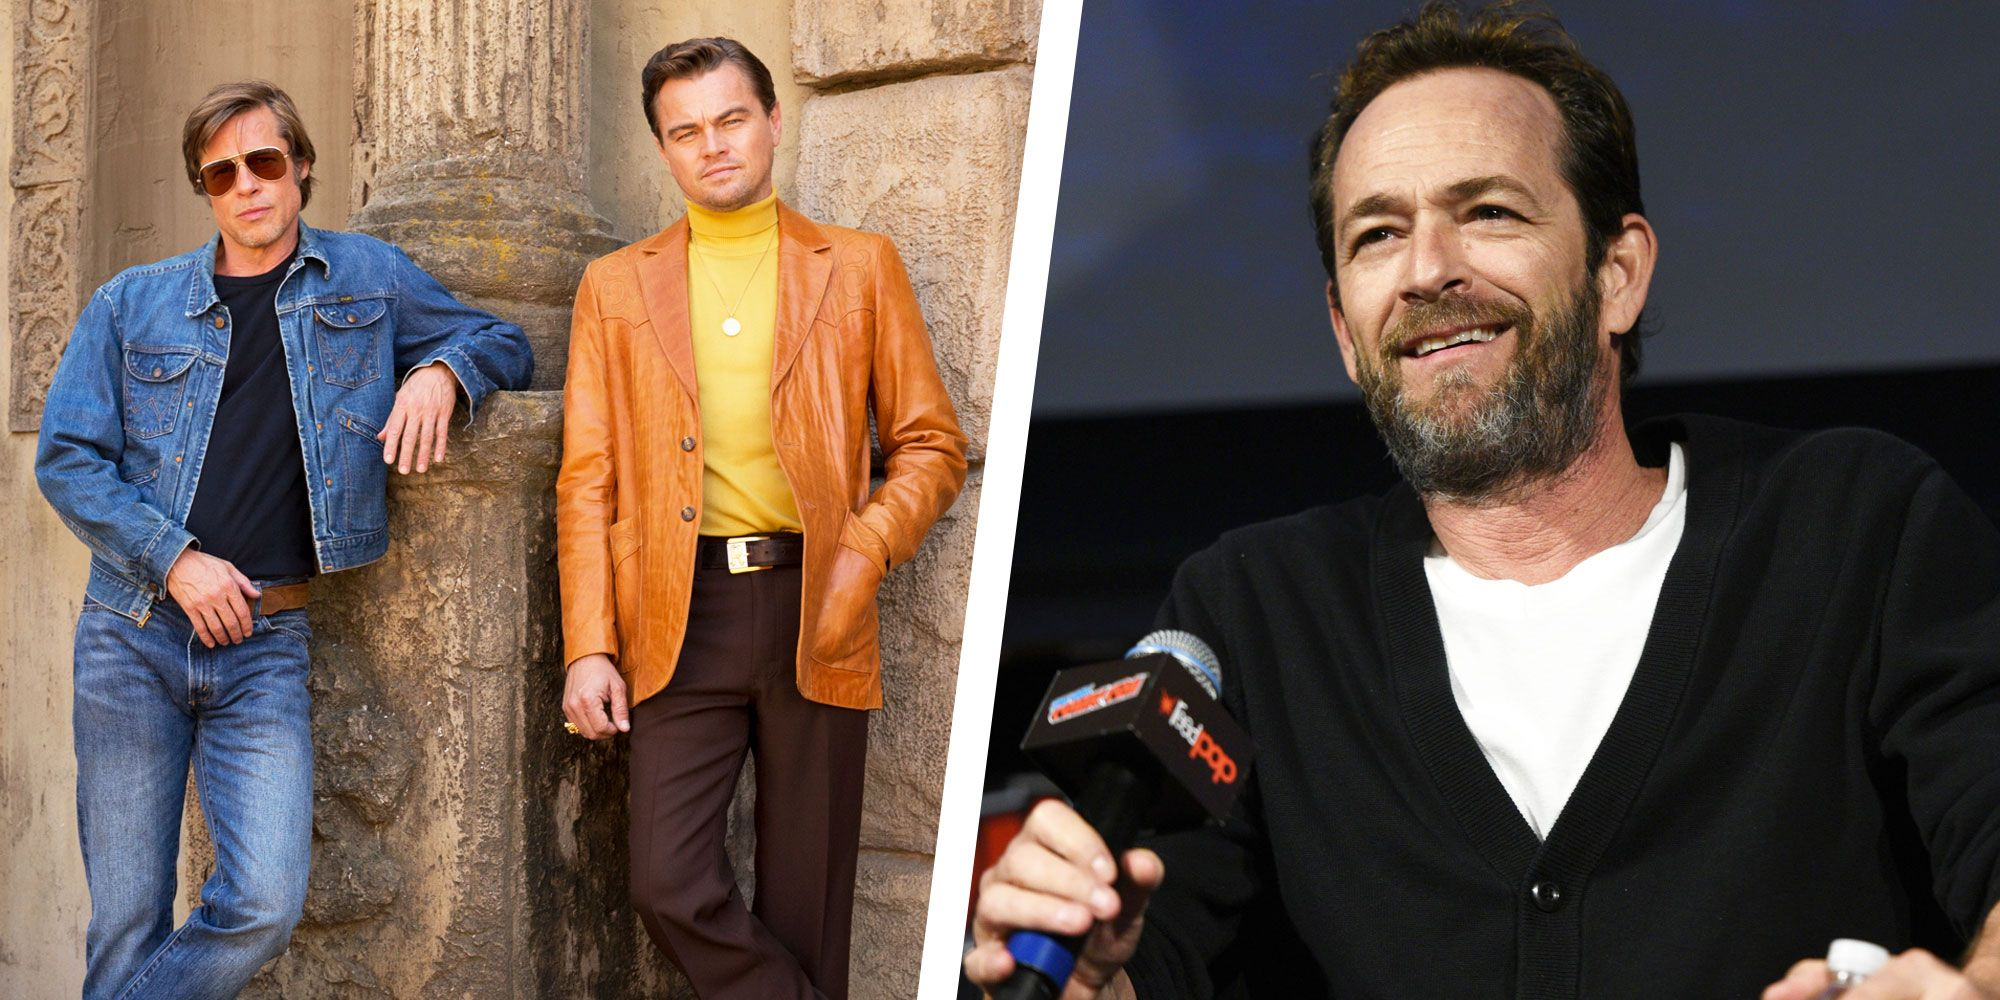 Leonardo Dicaprio and Brad Pitt Were Starstruck by Luke Perry's Presence On the Set of Once Upon a Time in Hollywood